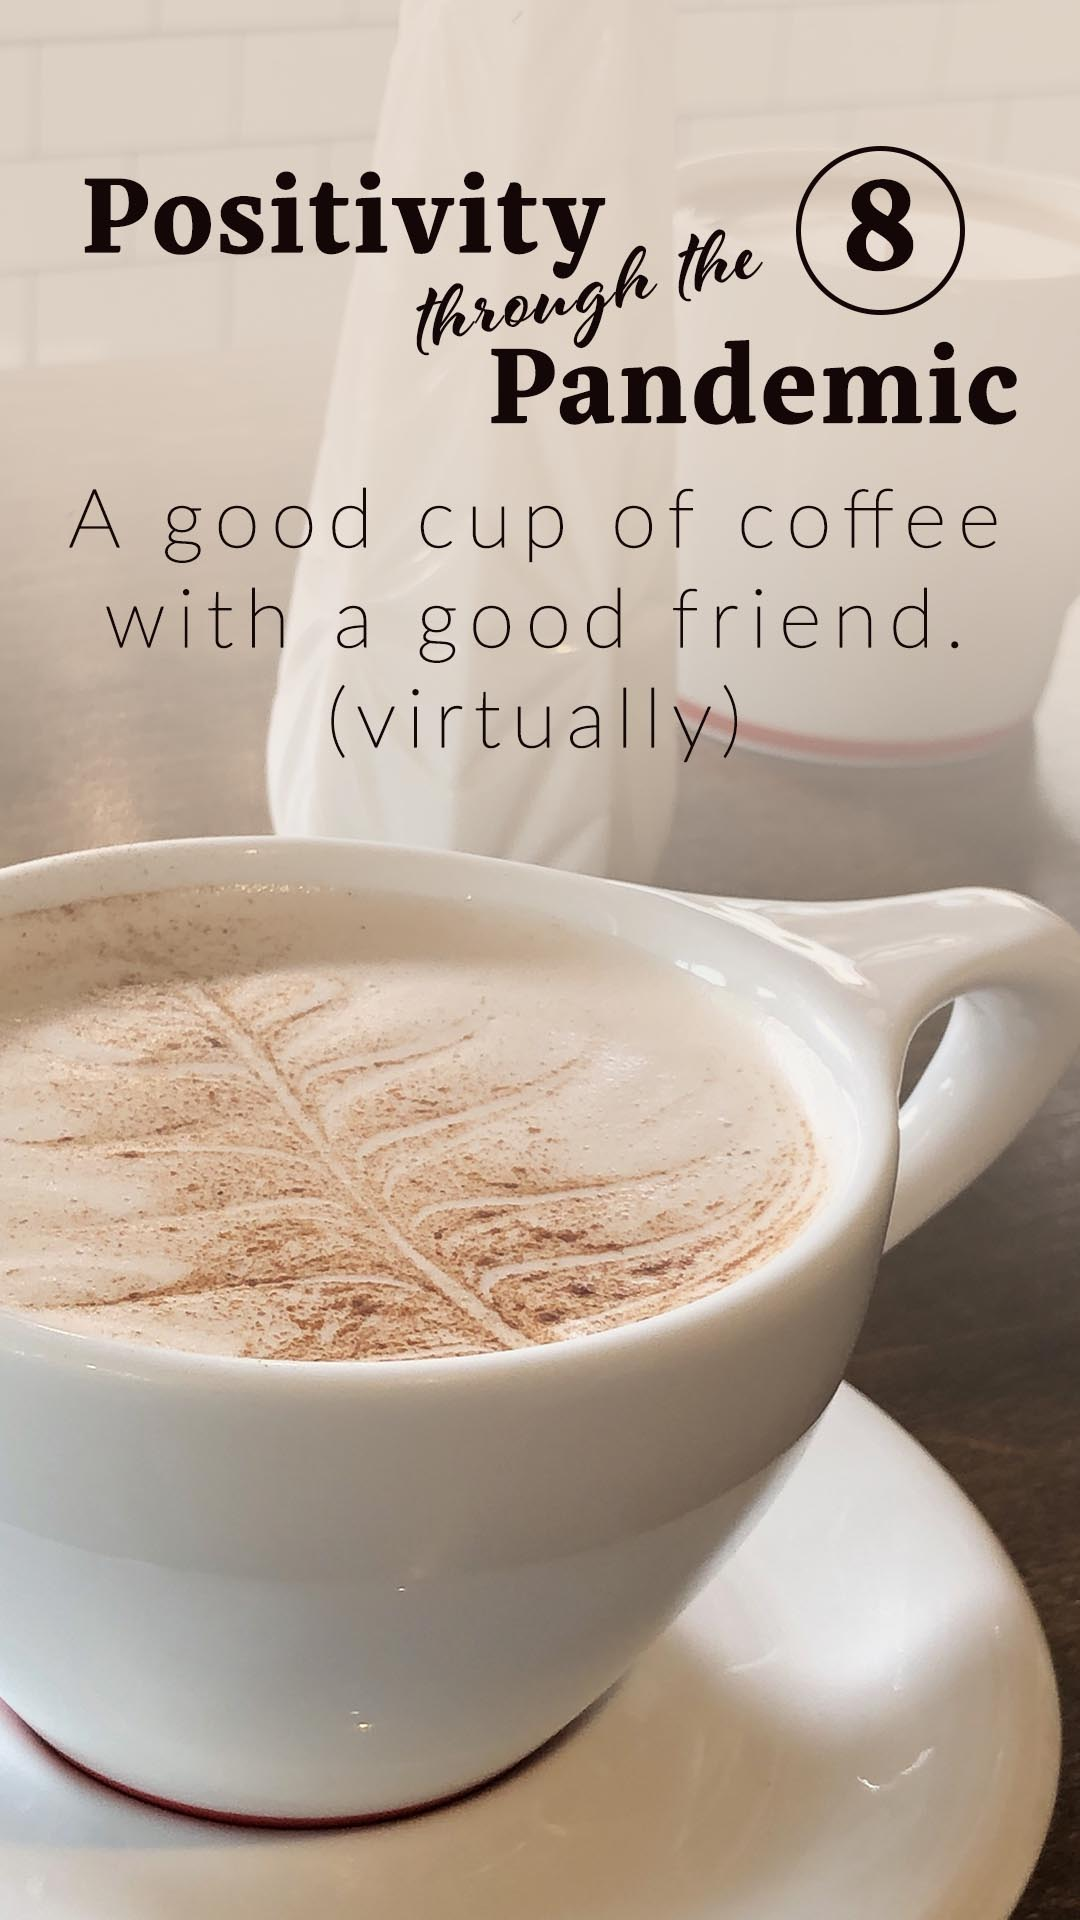 Positivity through the Pandemic #8: A good cup of coffee with a good friend virtually